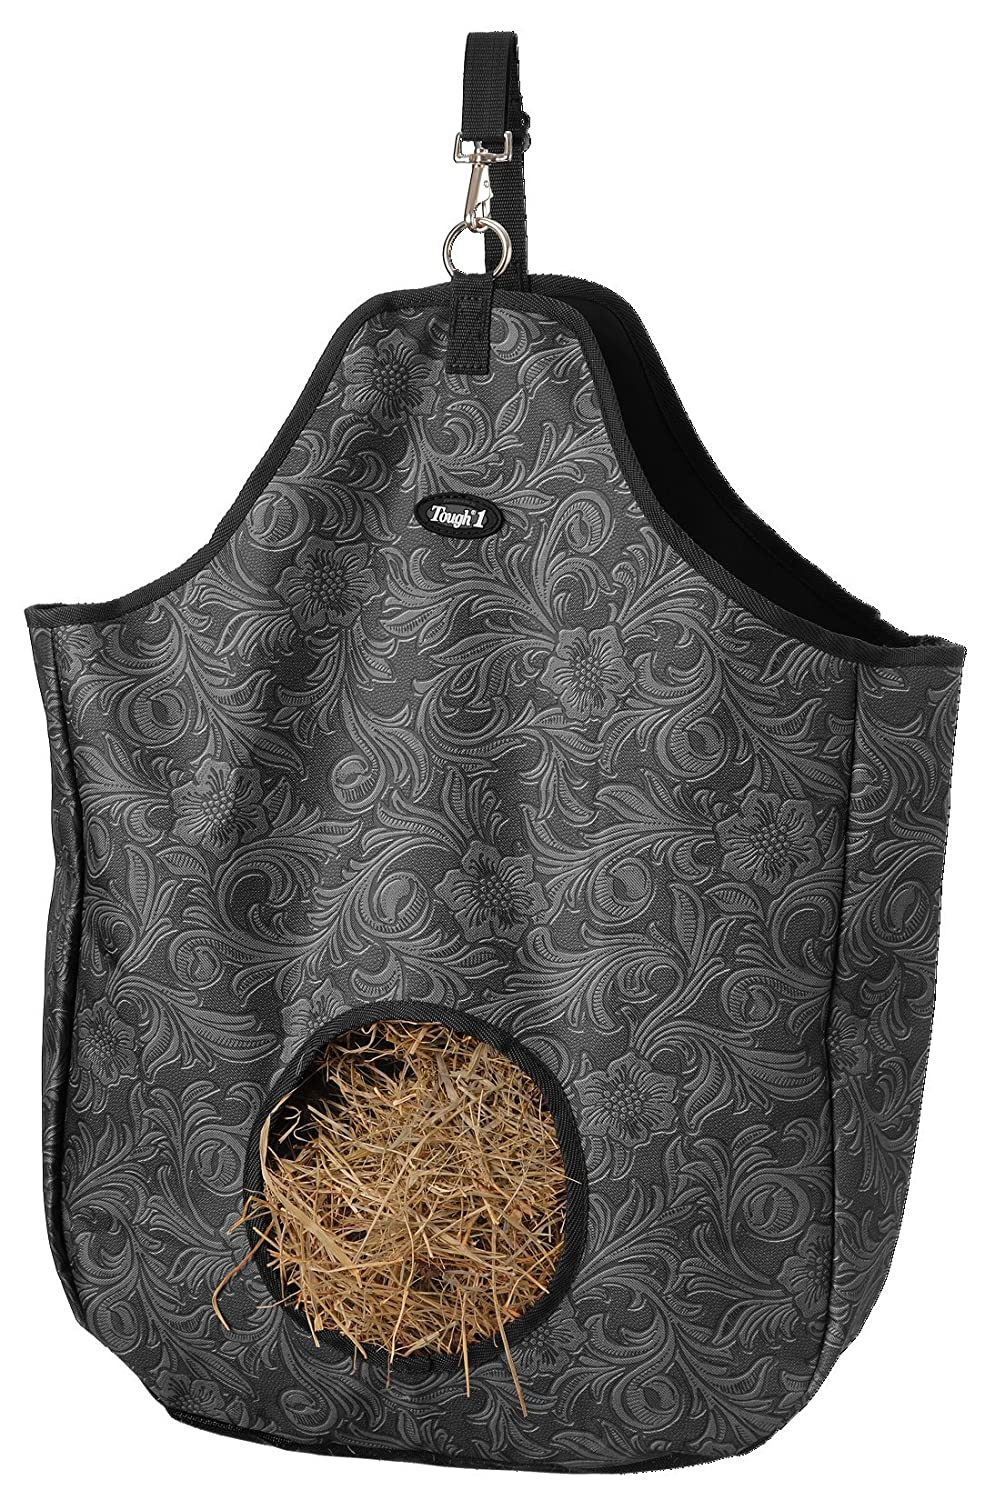 Tough 1 Nylon Hay Tote Bag in Prints, Tooled Leather Black JT International Inc. 72-7816-752-0